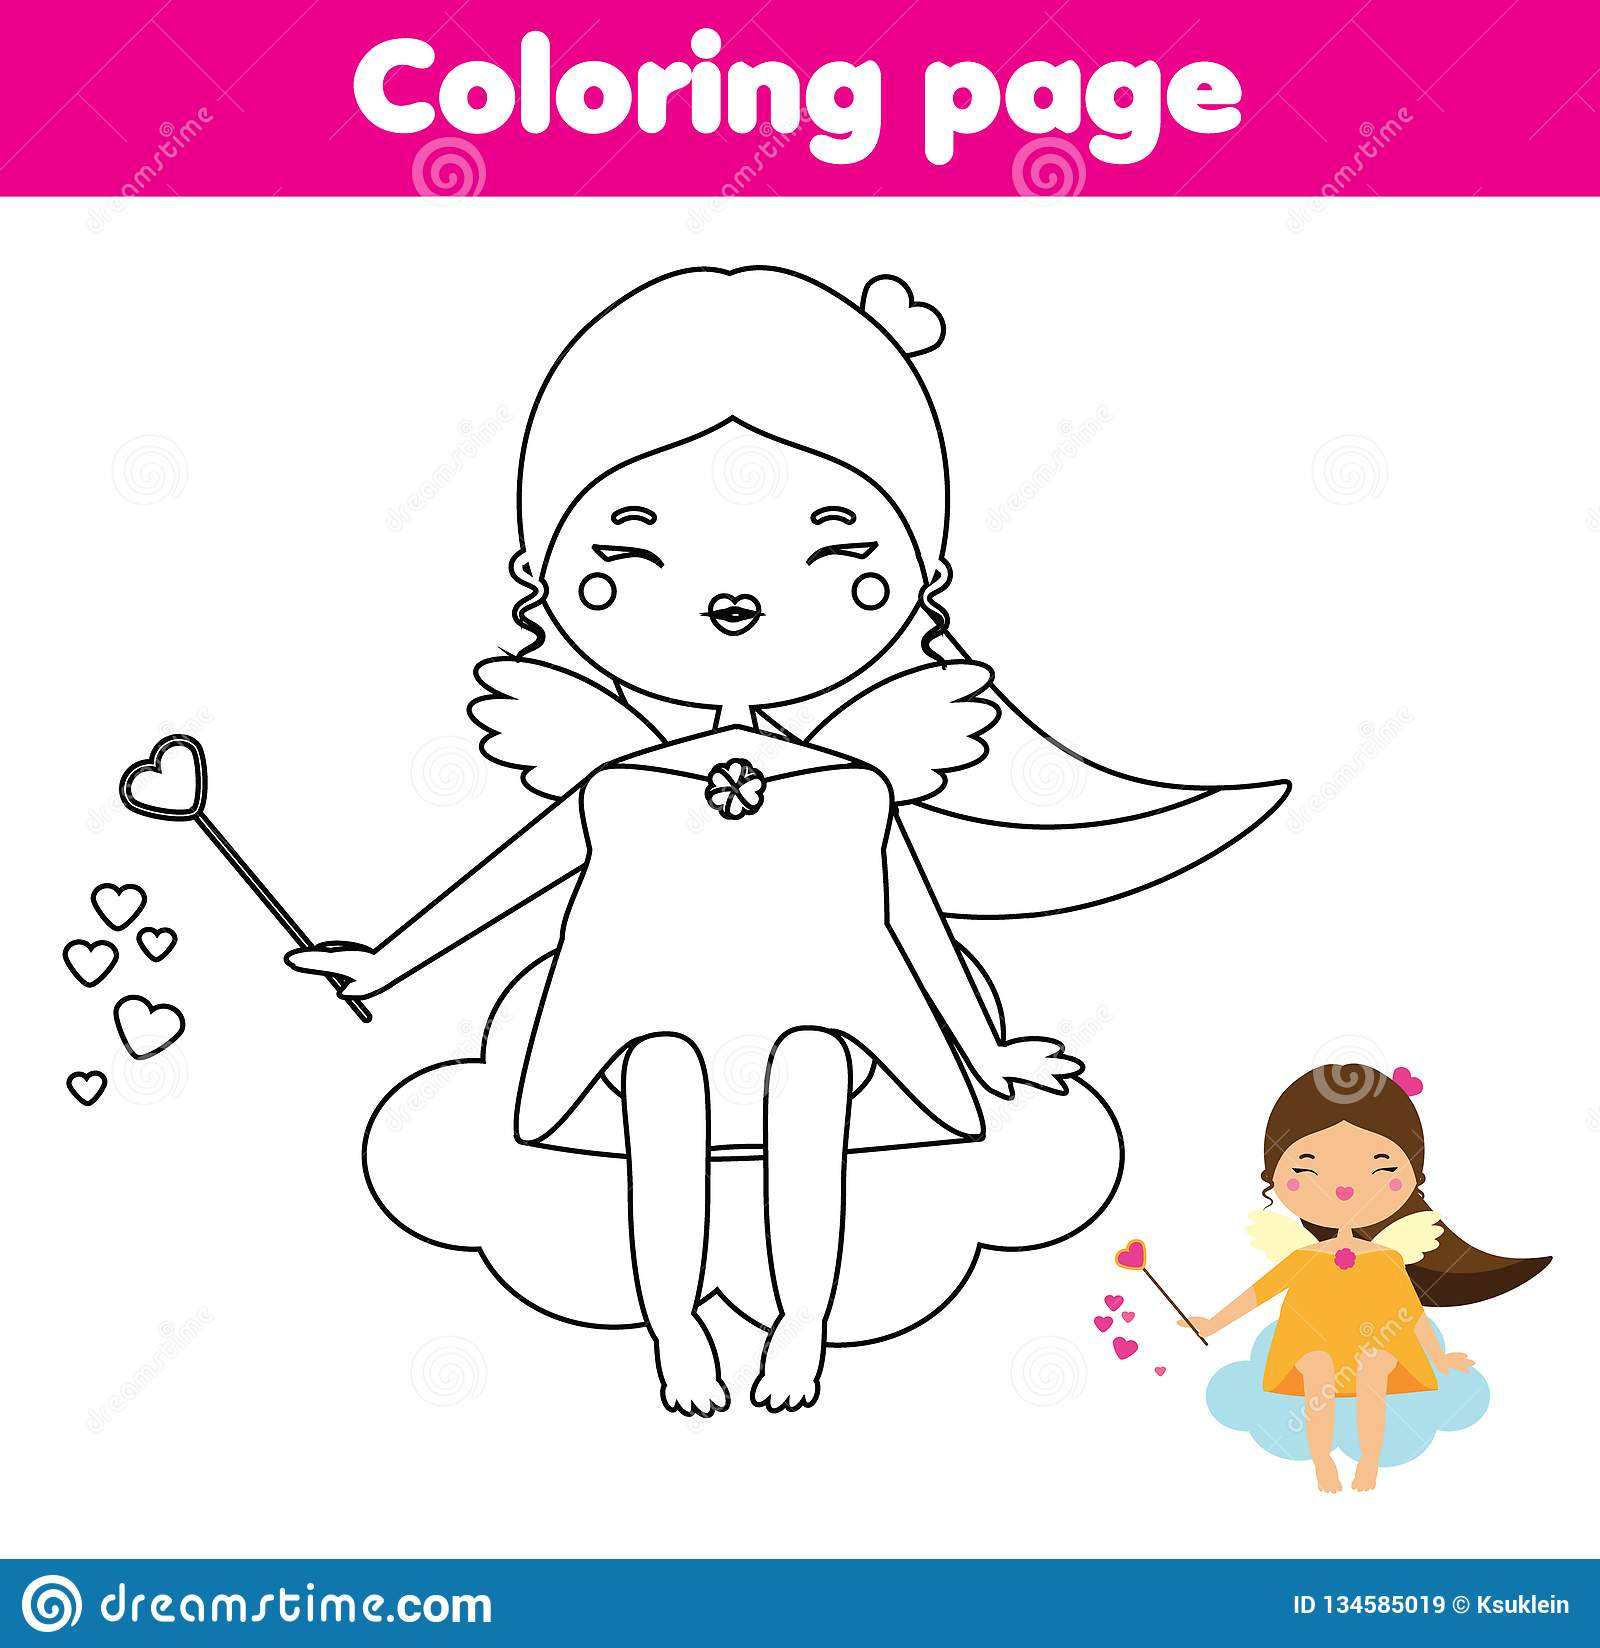 Coloring Page Educational Children Game Color Christmas Valentines Day Cupid Angel Drawing Kids Printable Activity Stock Vector Illustration Of Kindergarten Activity 134585019